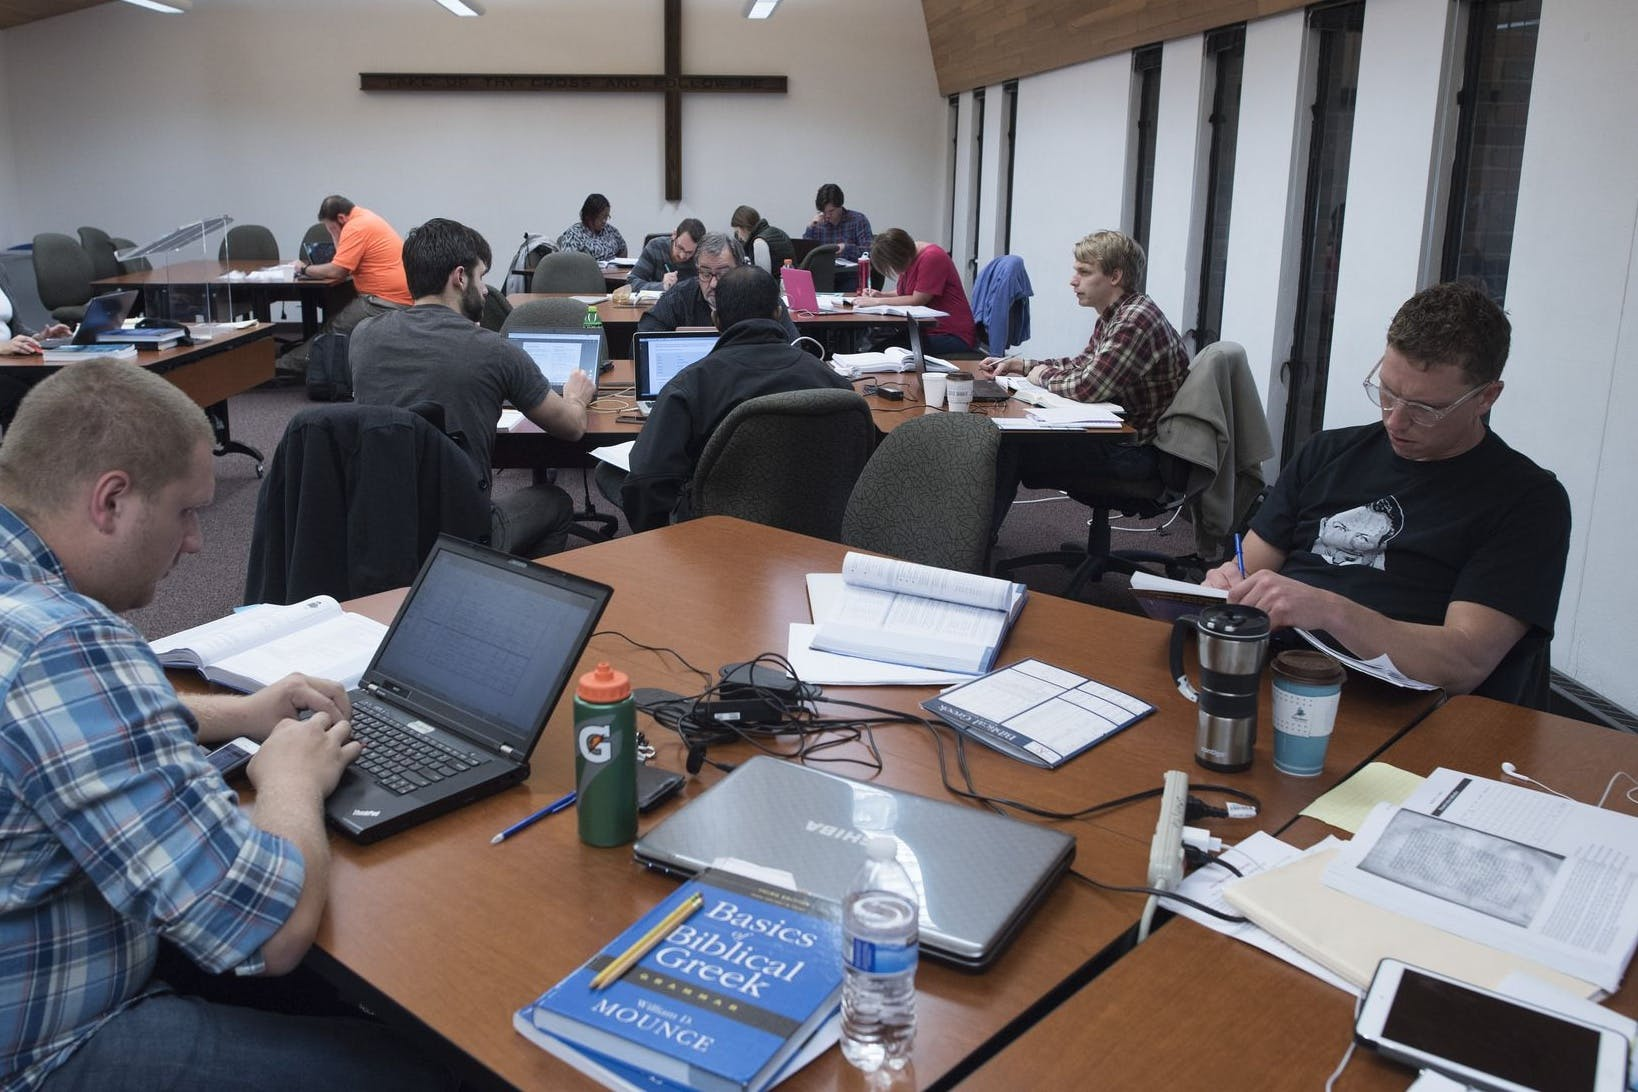 Free Bible Software for New Bethel Seminary Students